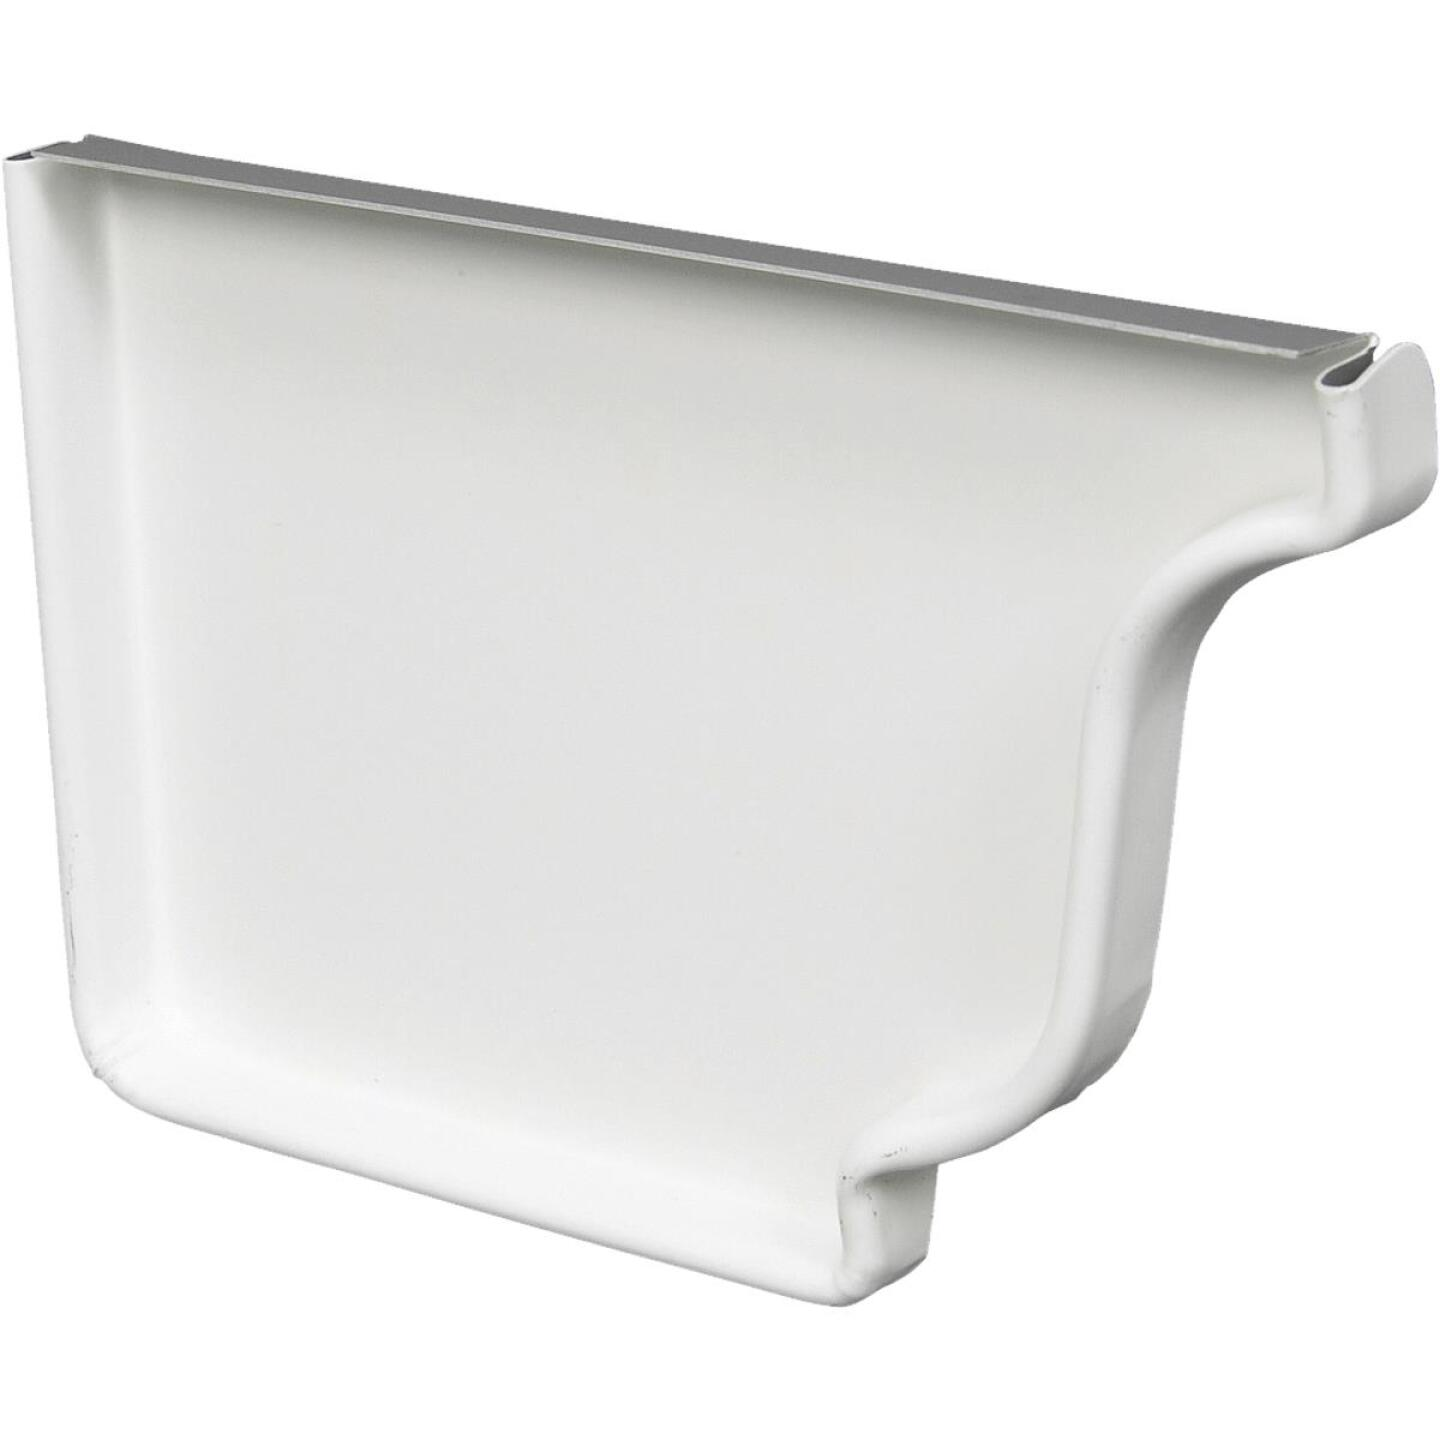 Spectra Metals 5 In. Aluminum White Left Gutter End Cap Image 1